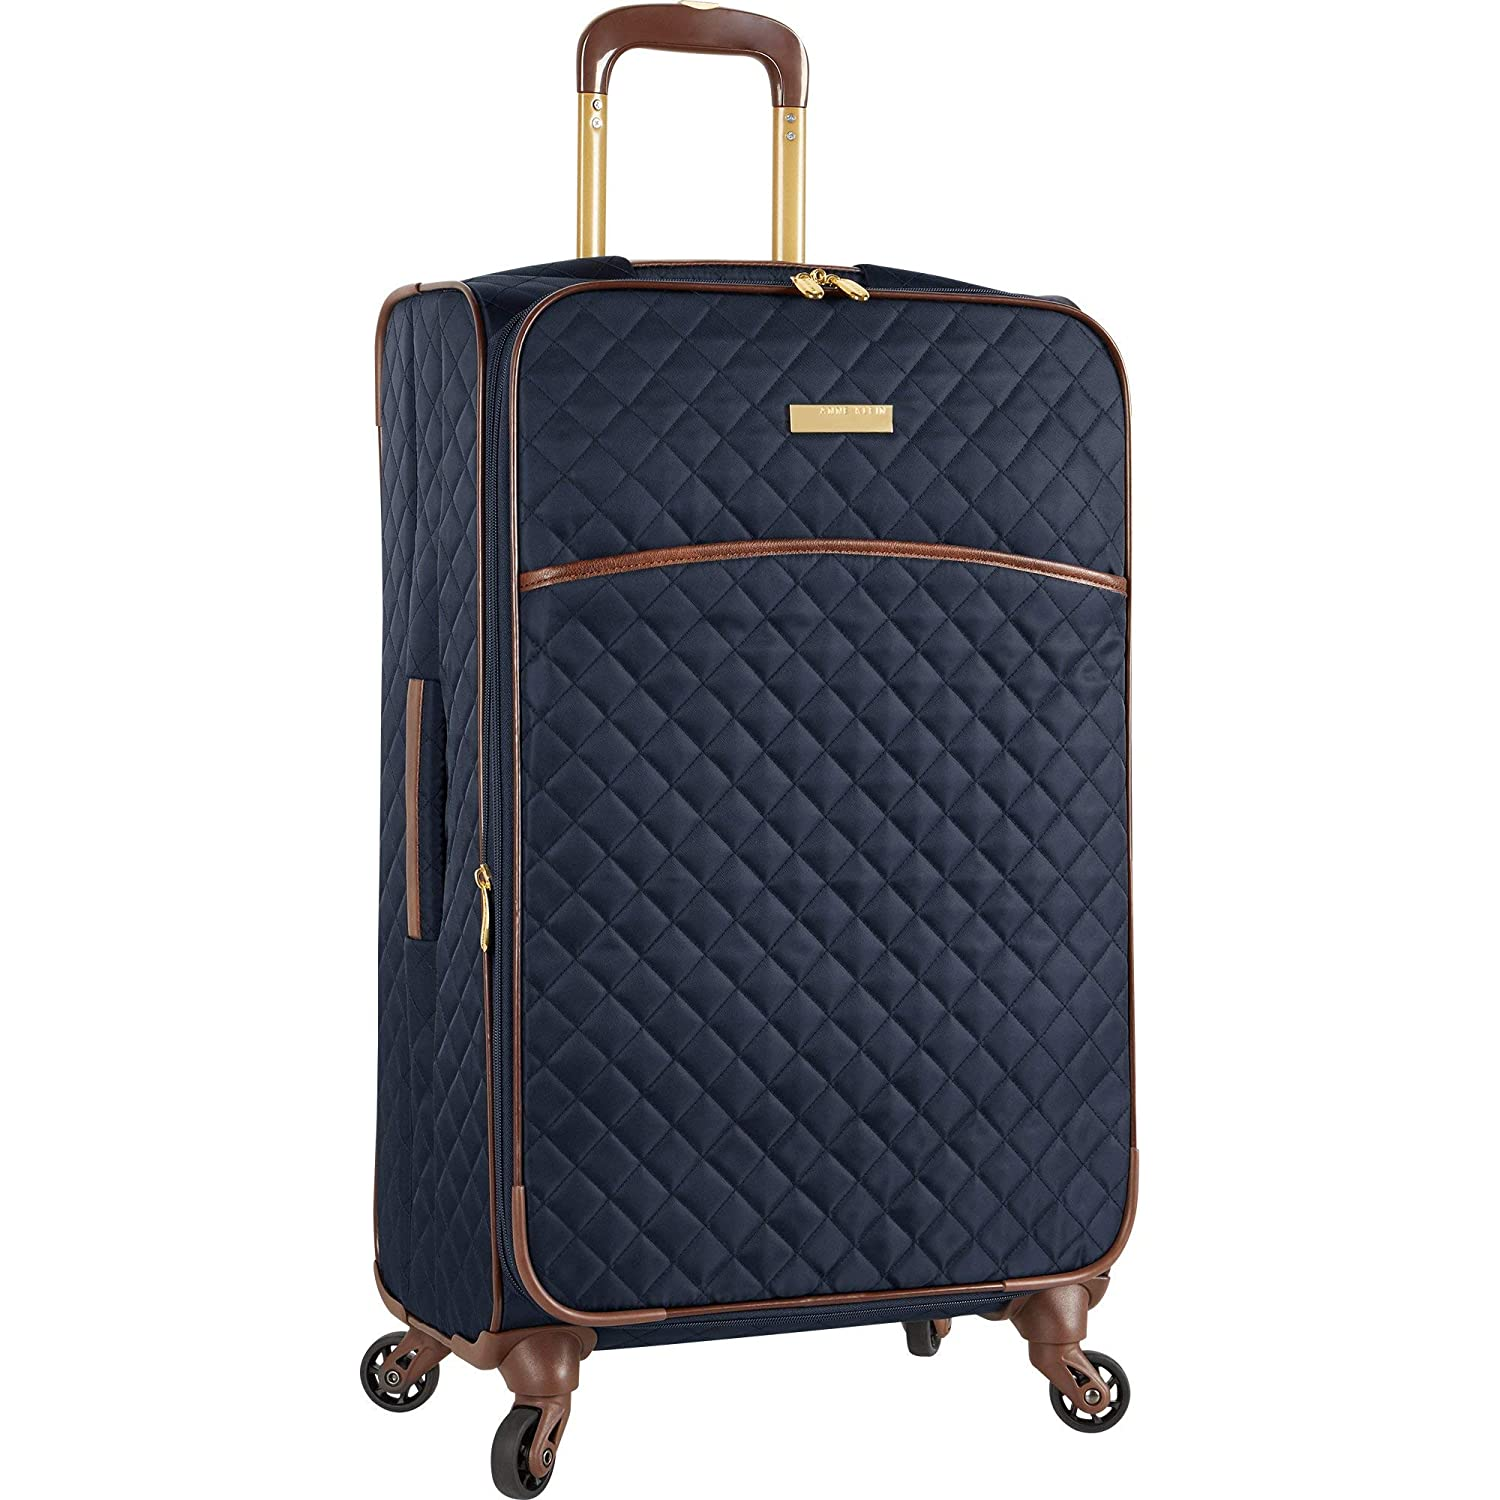 Image of Anne Klein Expandable Lightweight Spinner Luggage Suitcase Luggage